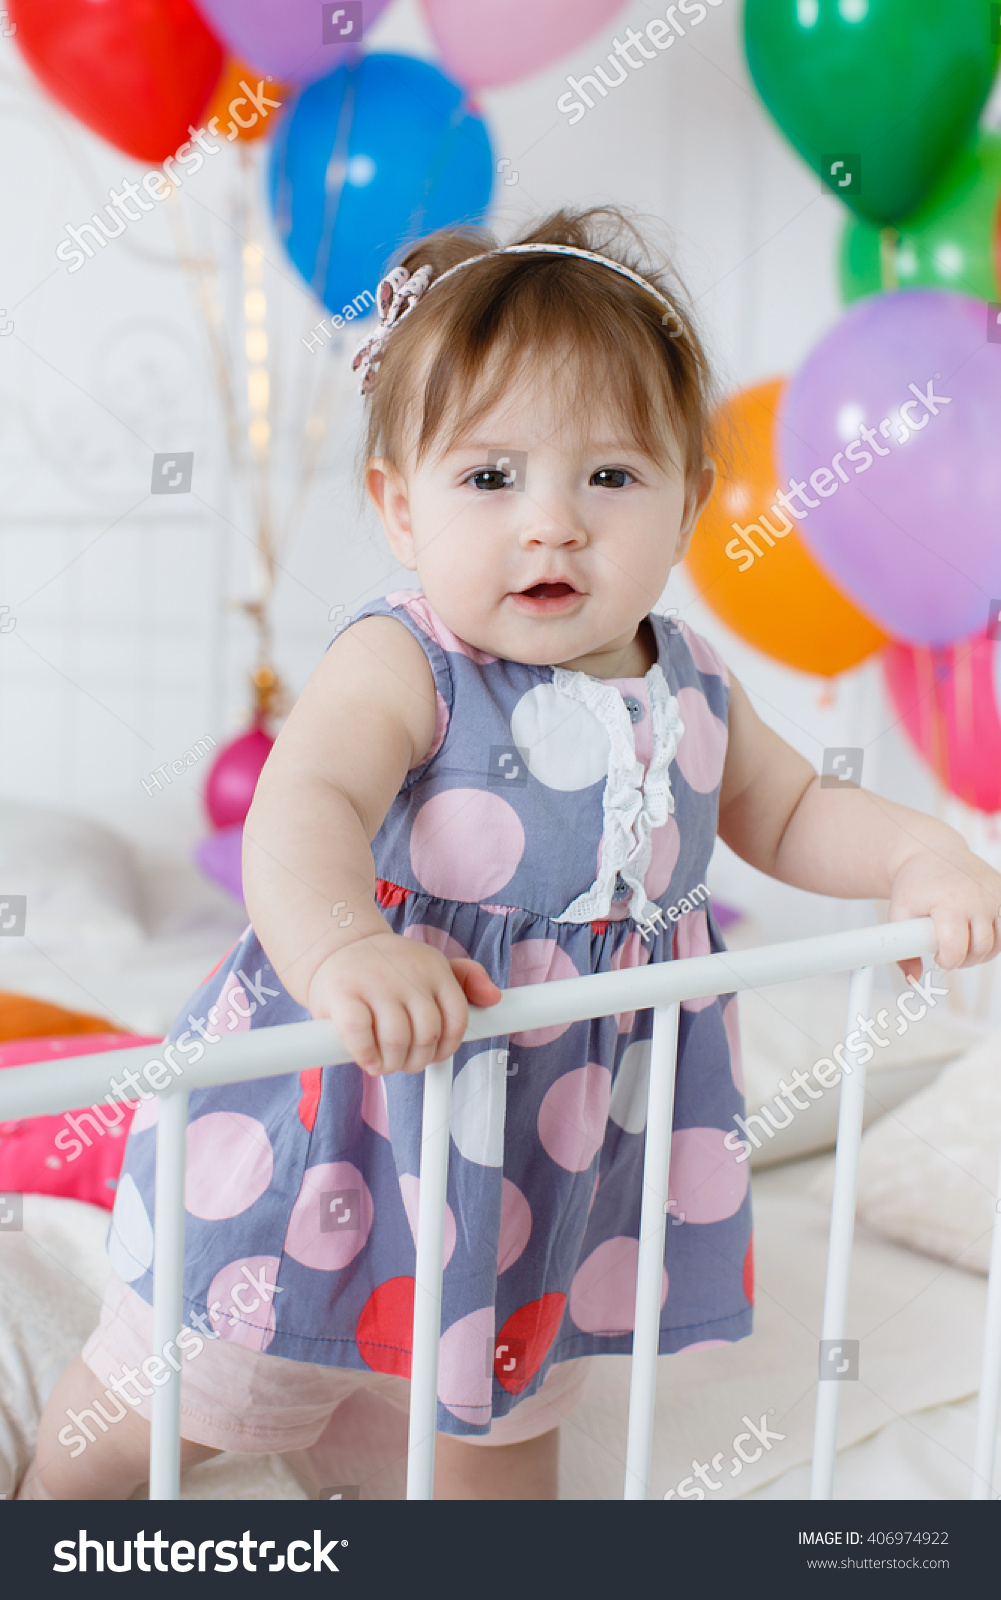 cute baby girl 12 year old stock photo (edit now) 406974922